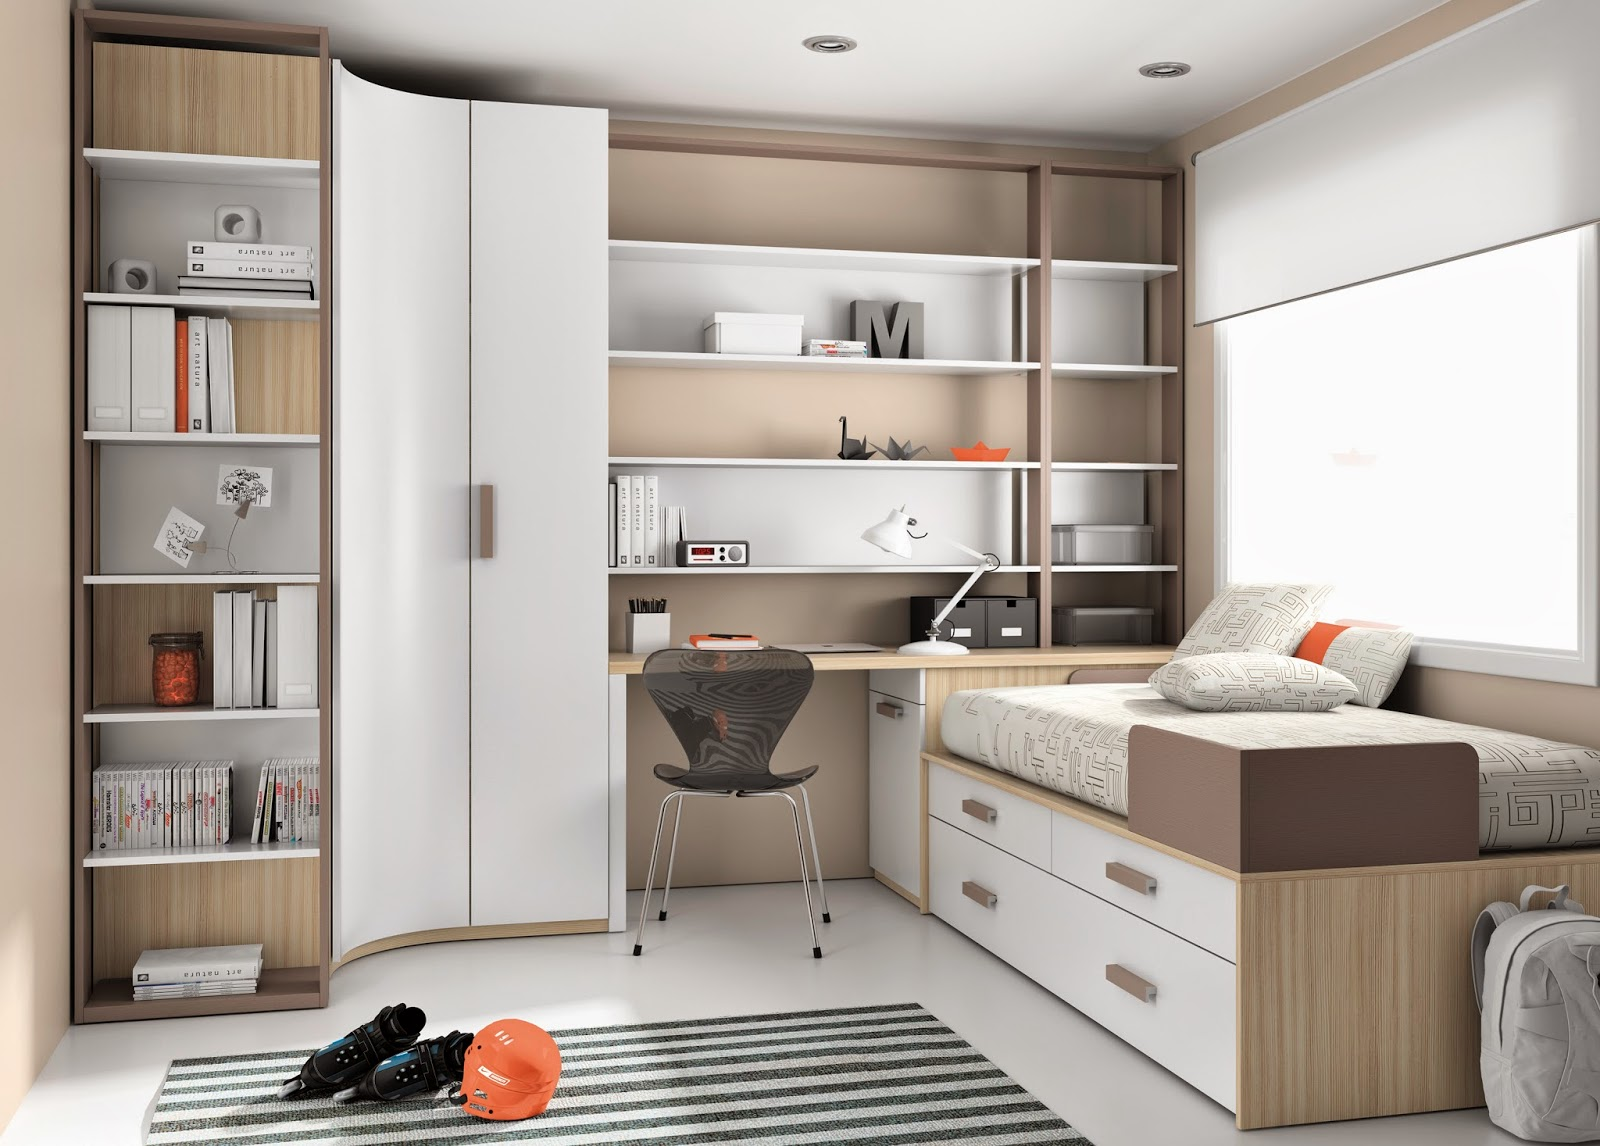 Teenagers and their study area - Muebles modulares dormitorio ...